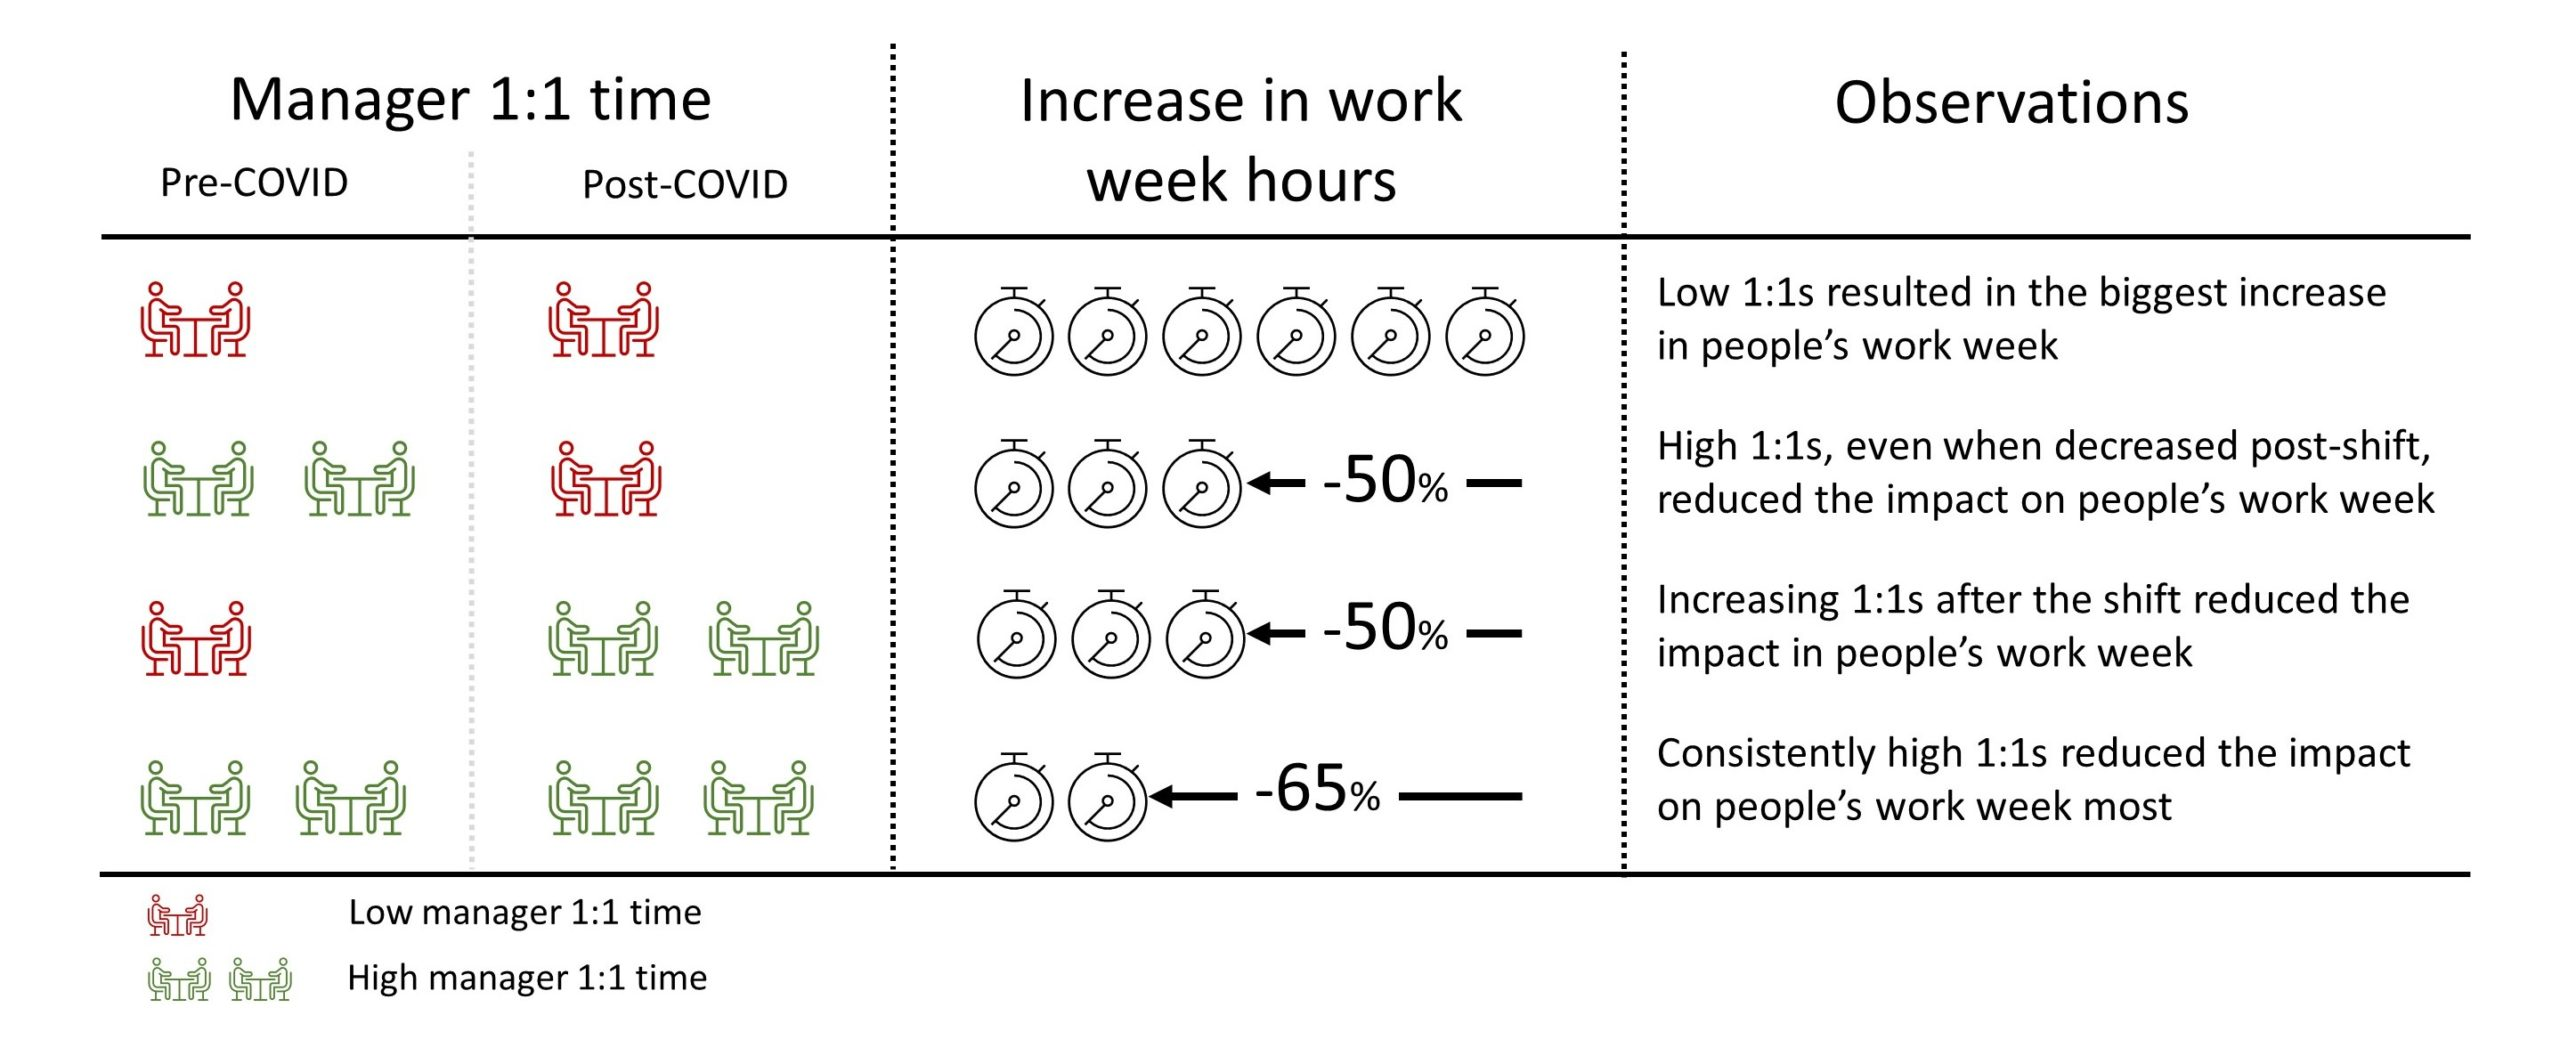 A three-column chart showing the correlation between manager 1:1 time, increase in work hours, and observations